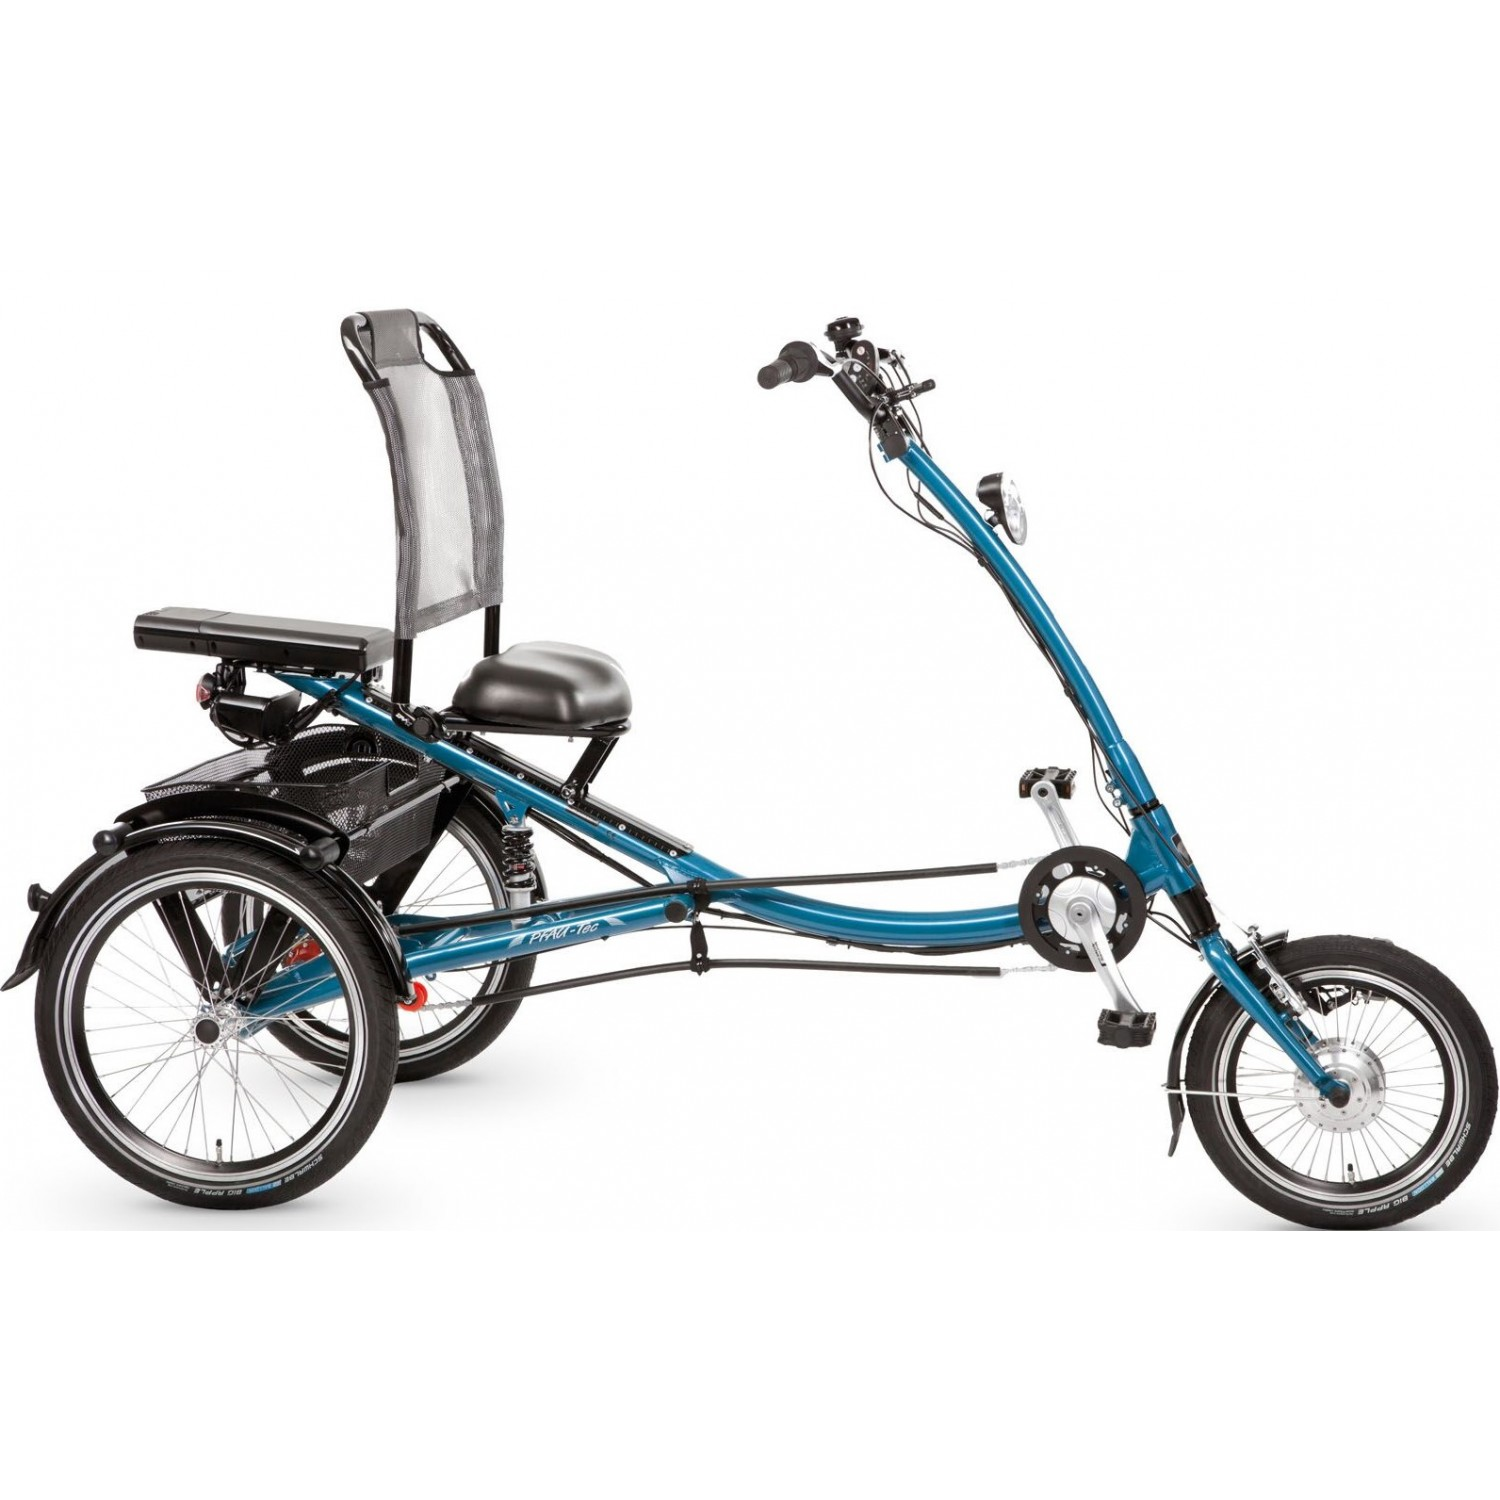 Scooter Tricycle Electrique Trike